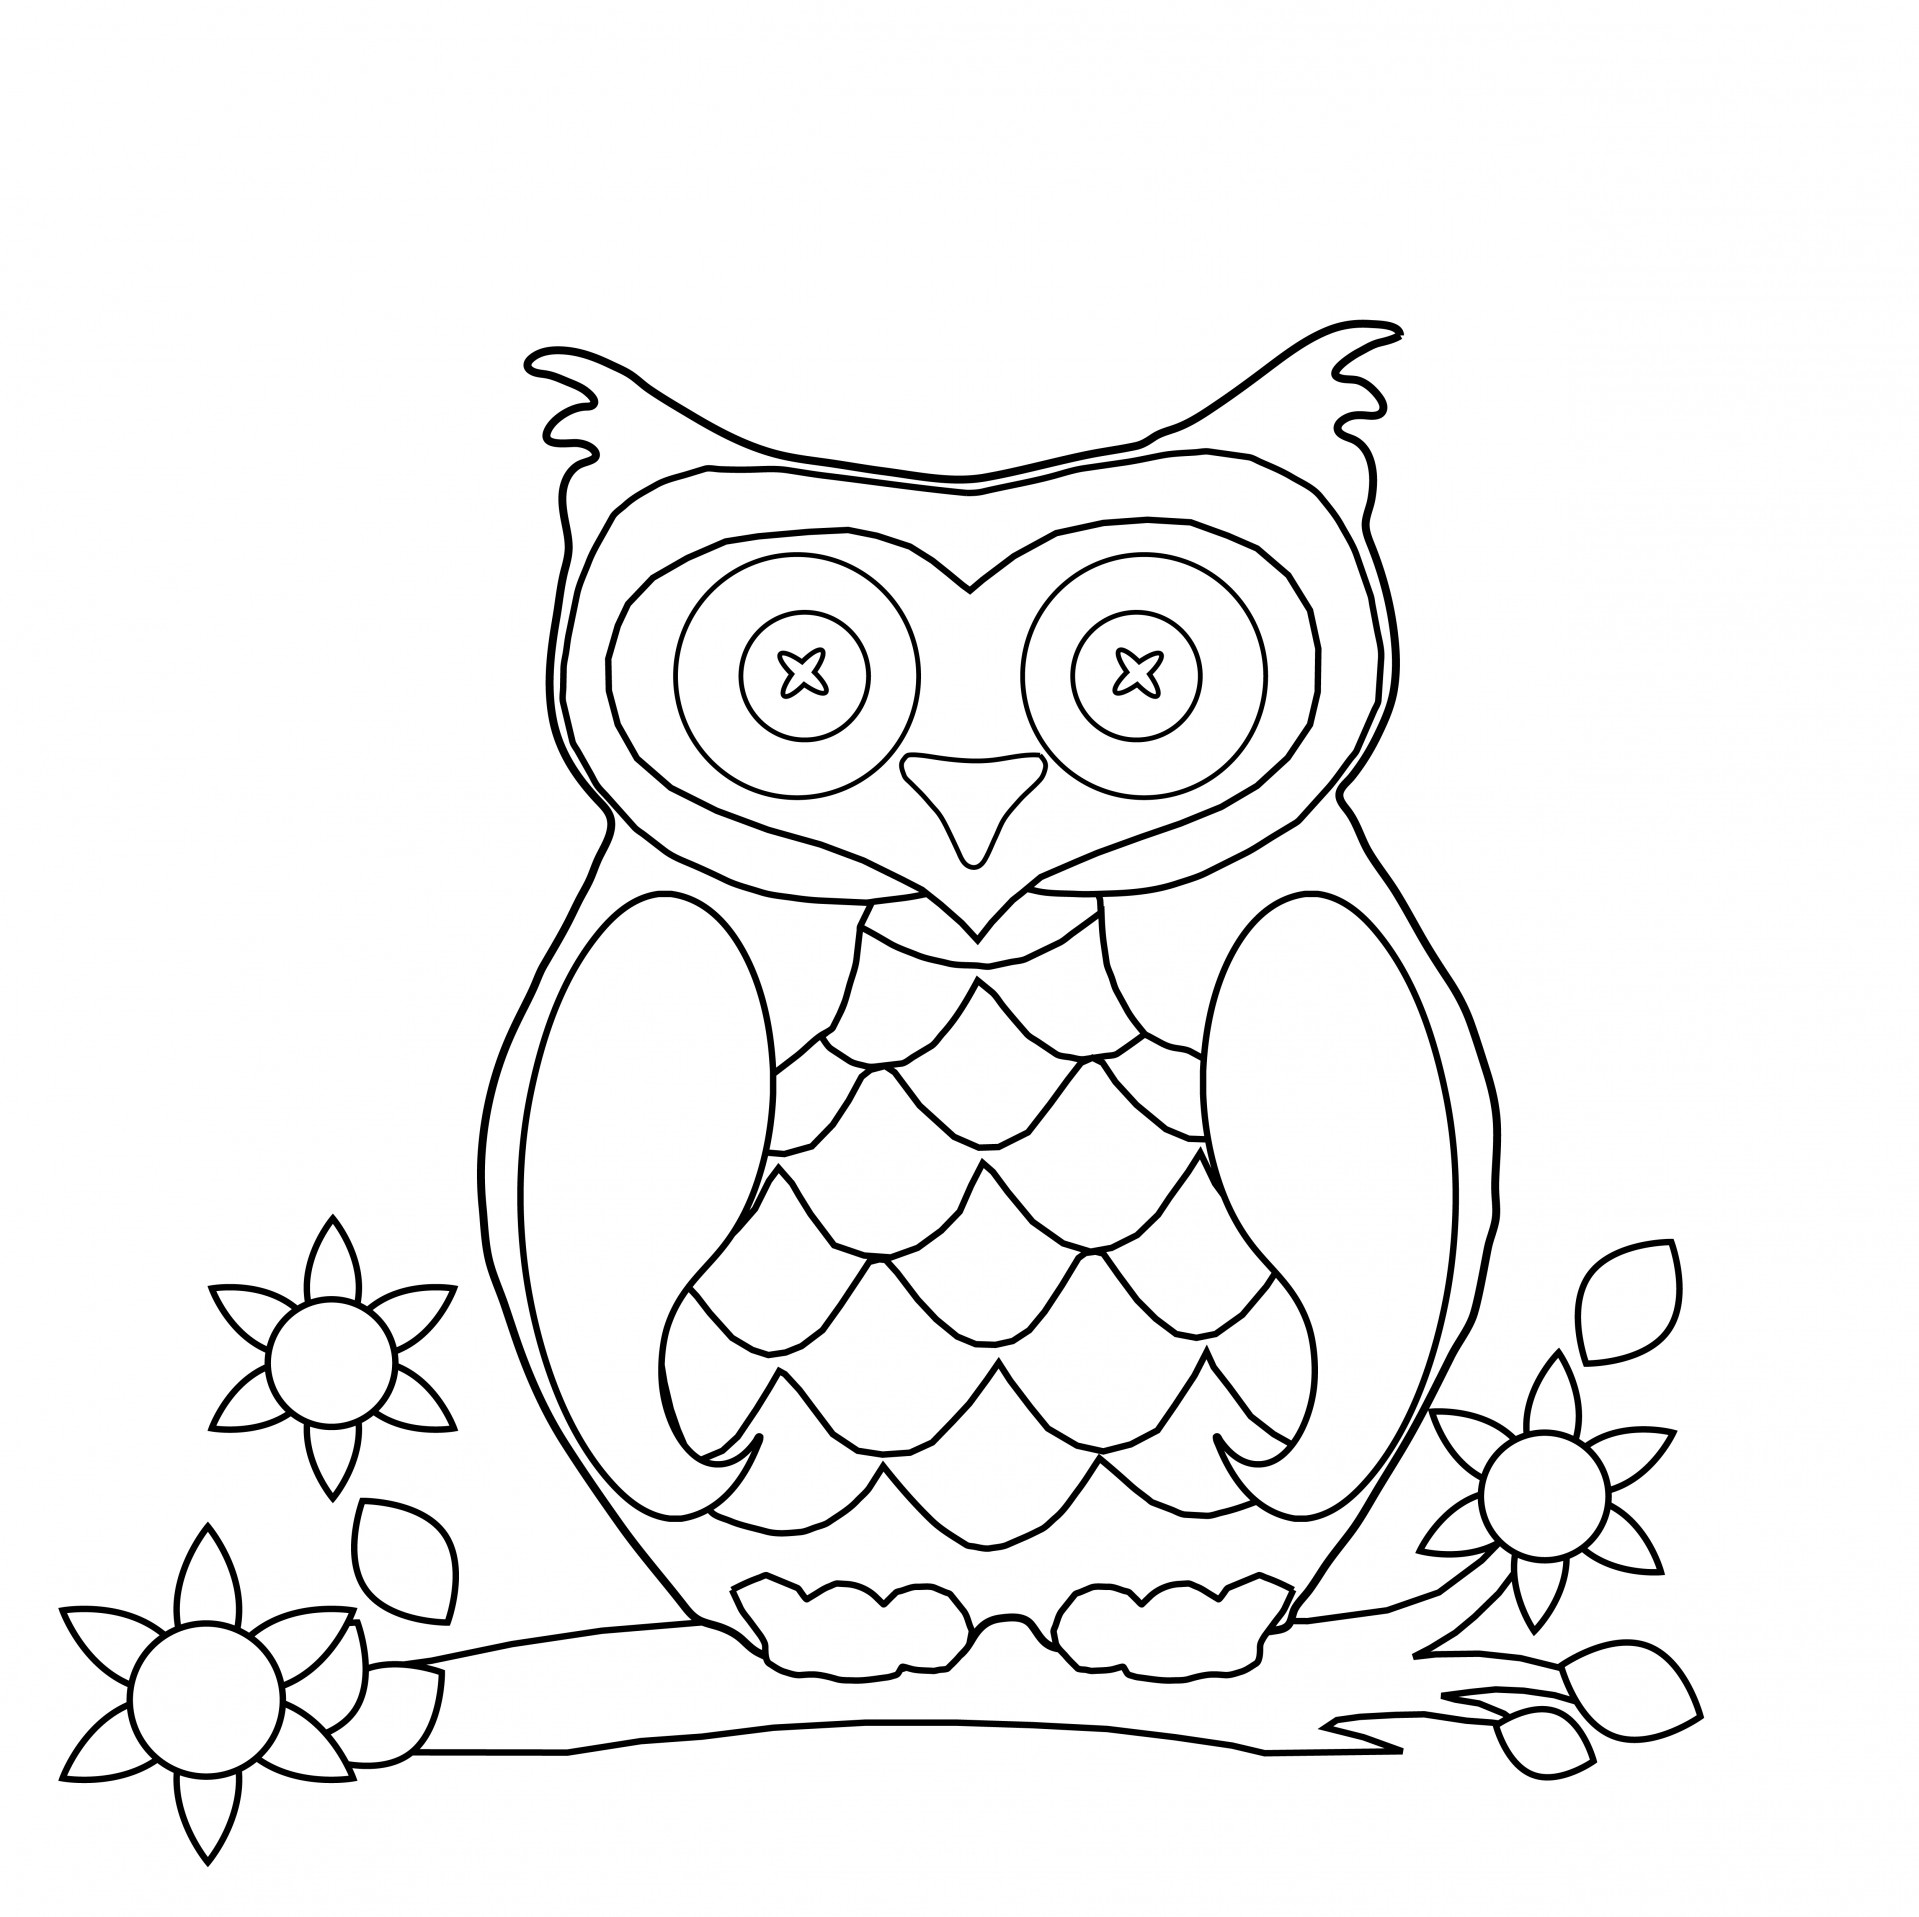 coloring printables frozen coloring pages 4 disneyclipscom printables coloring